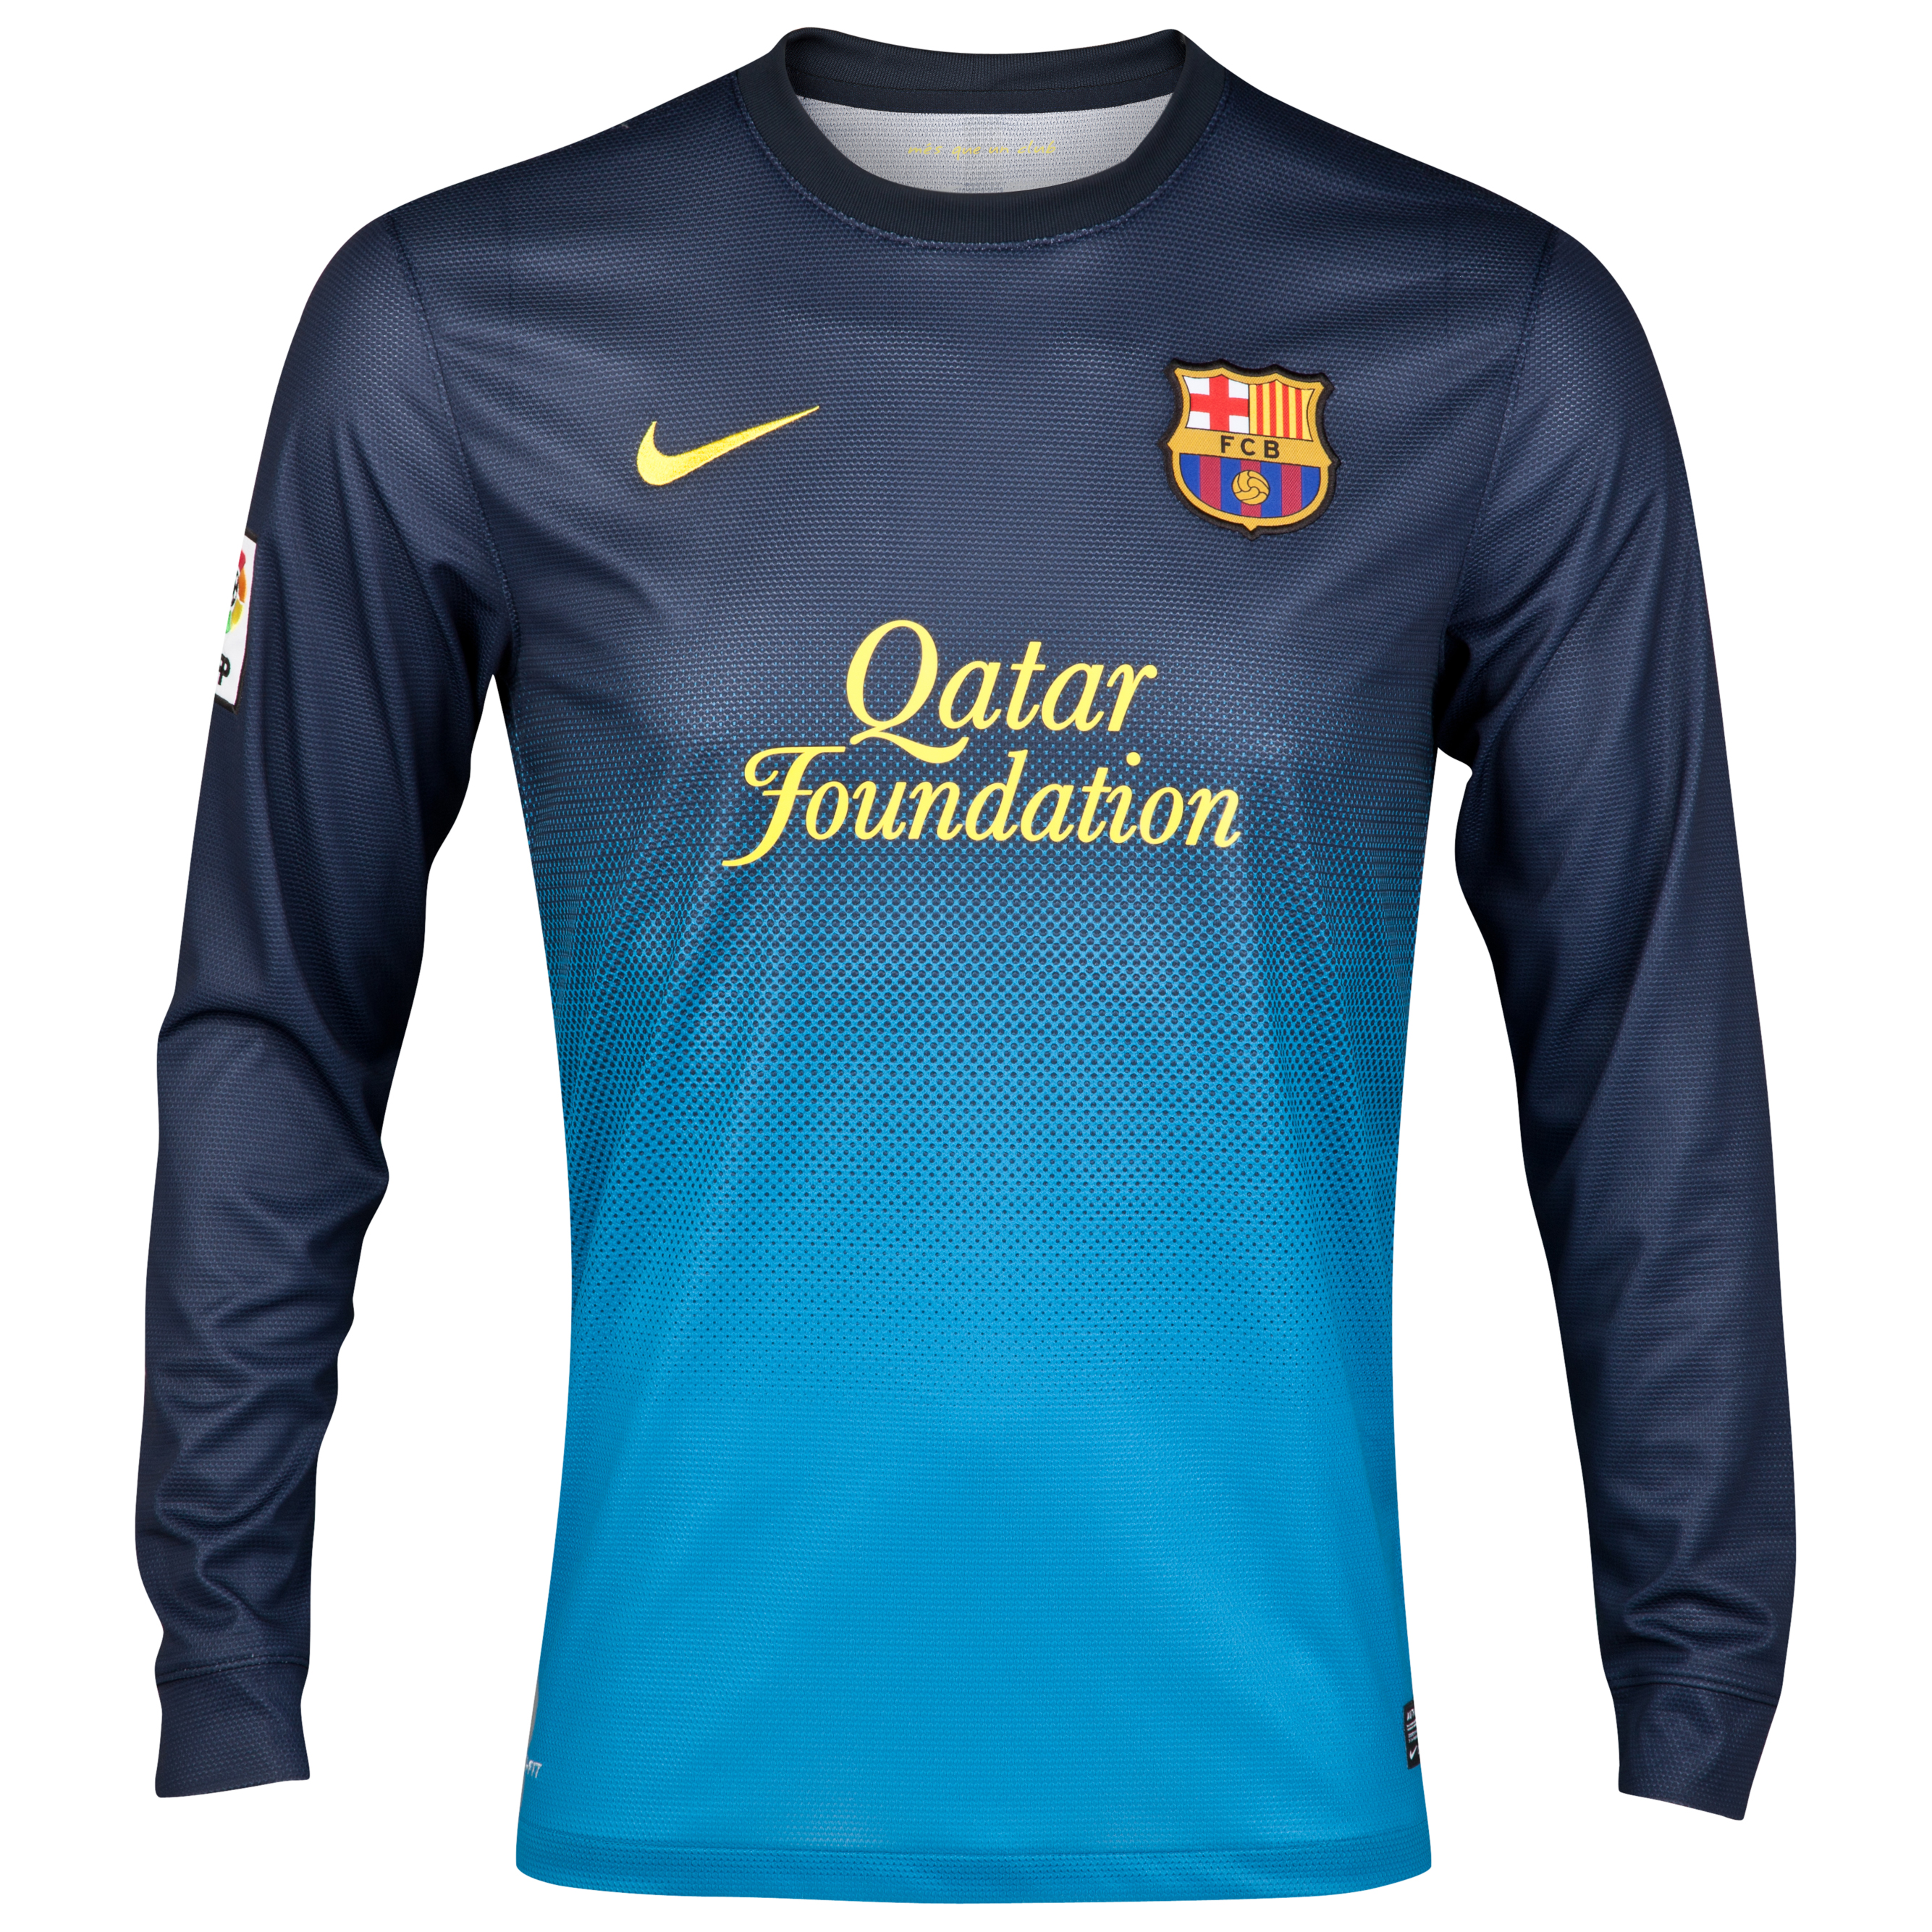 Barcelona Home Goalkeeper Shirt 2012/13